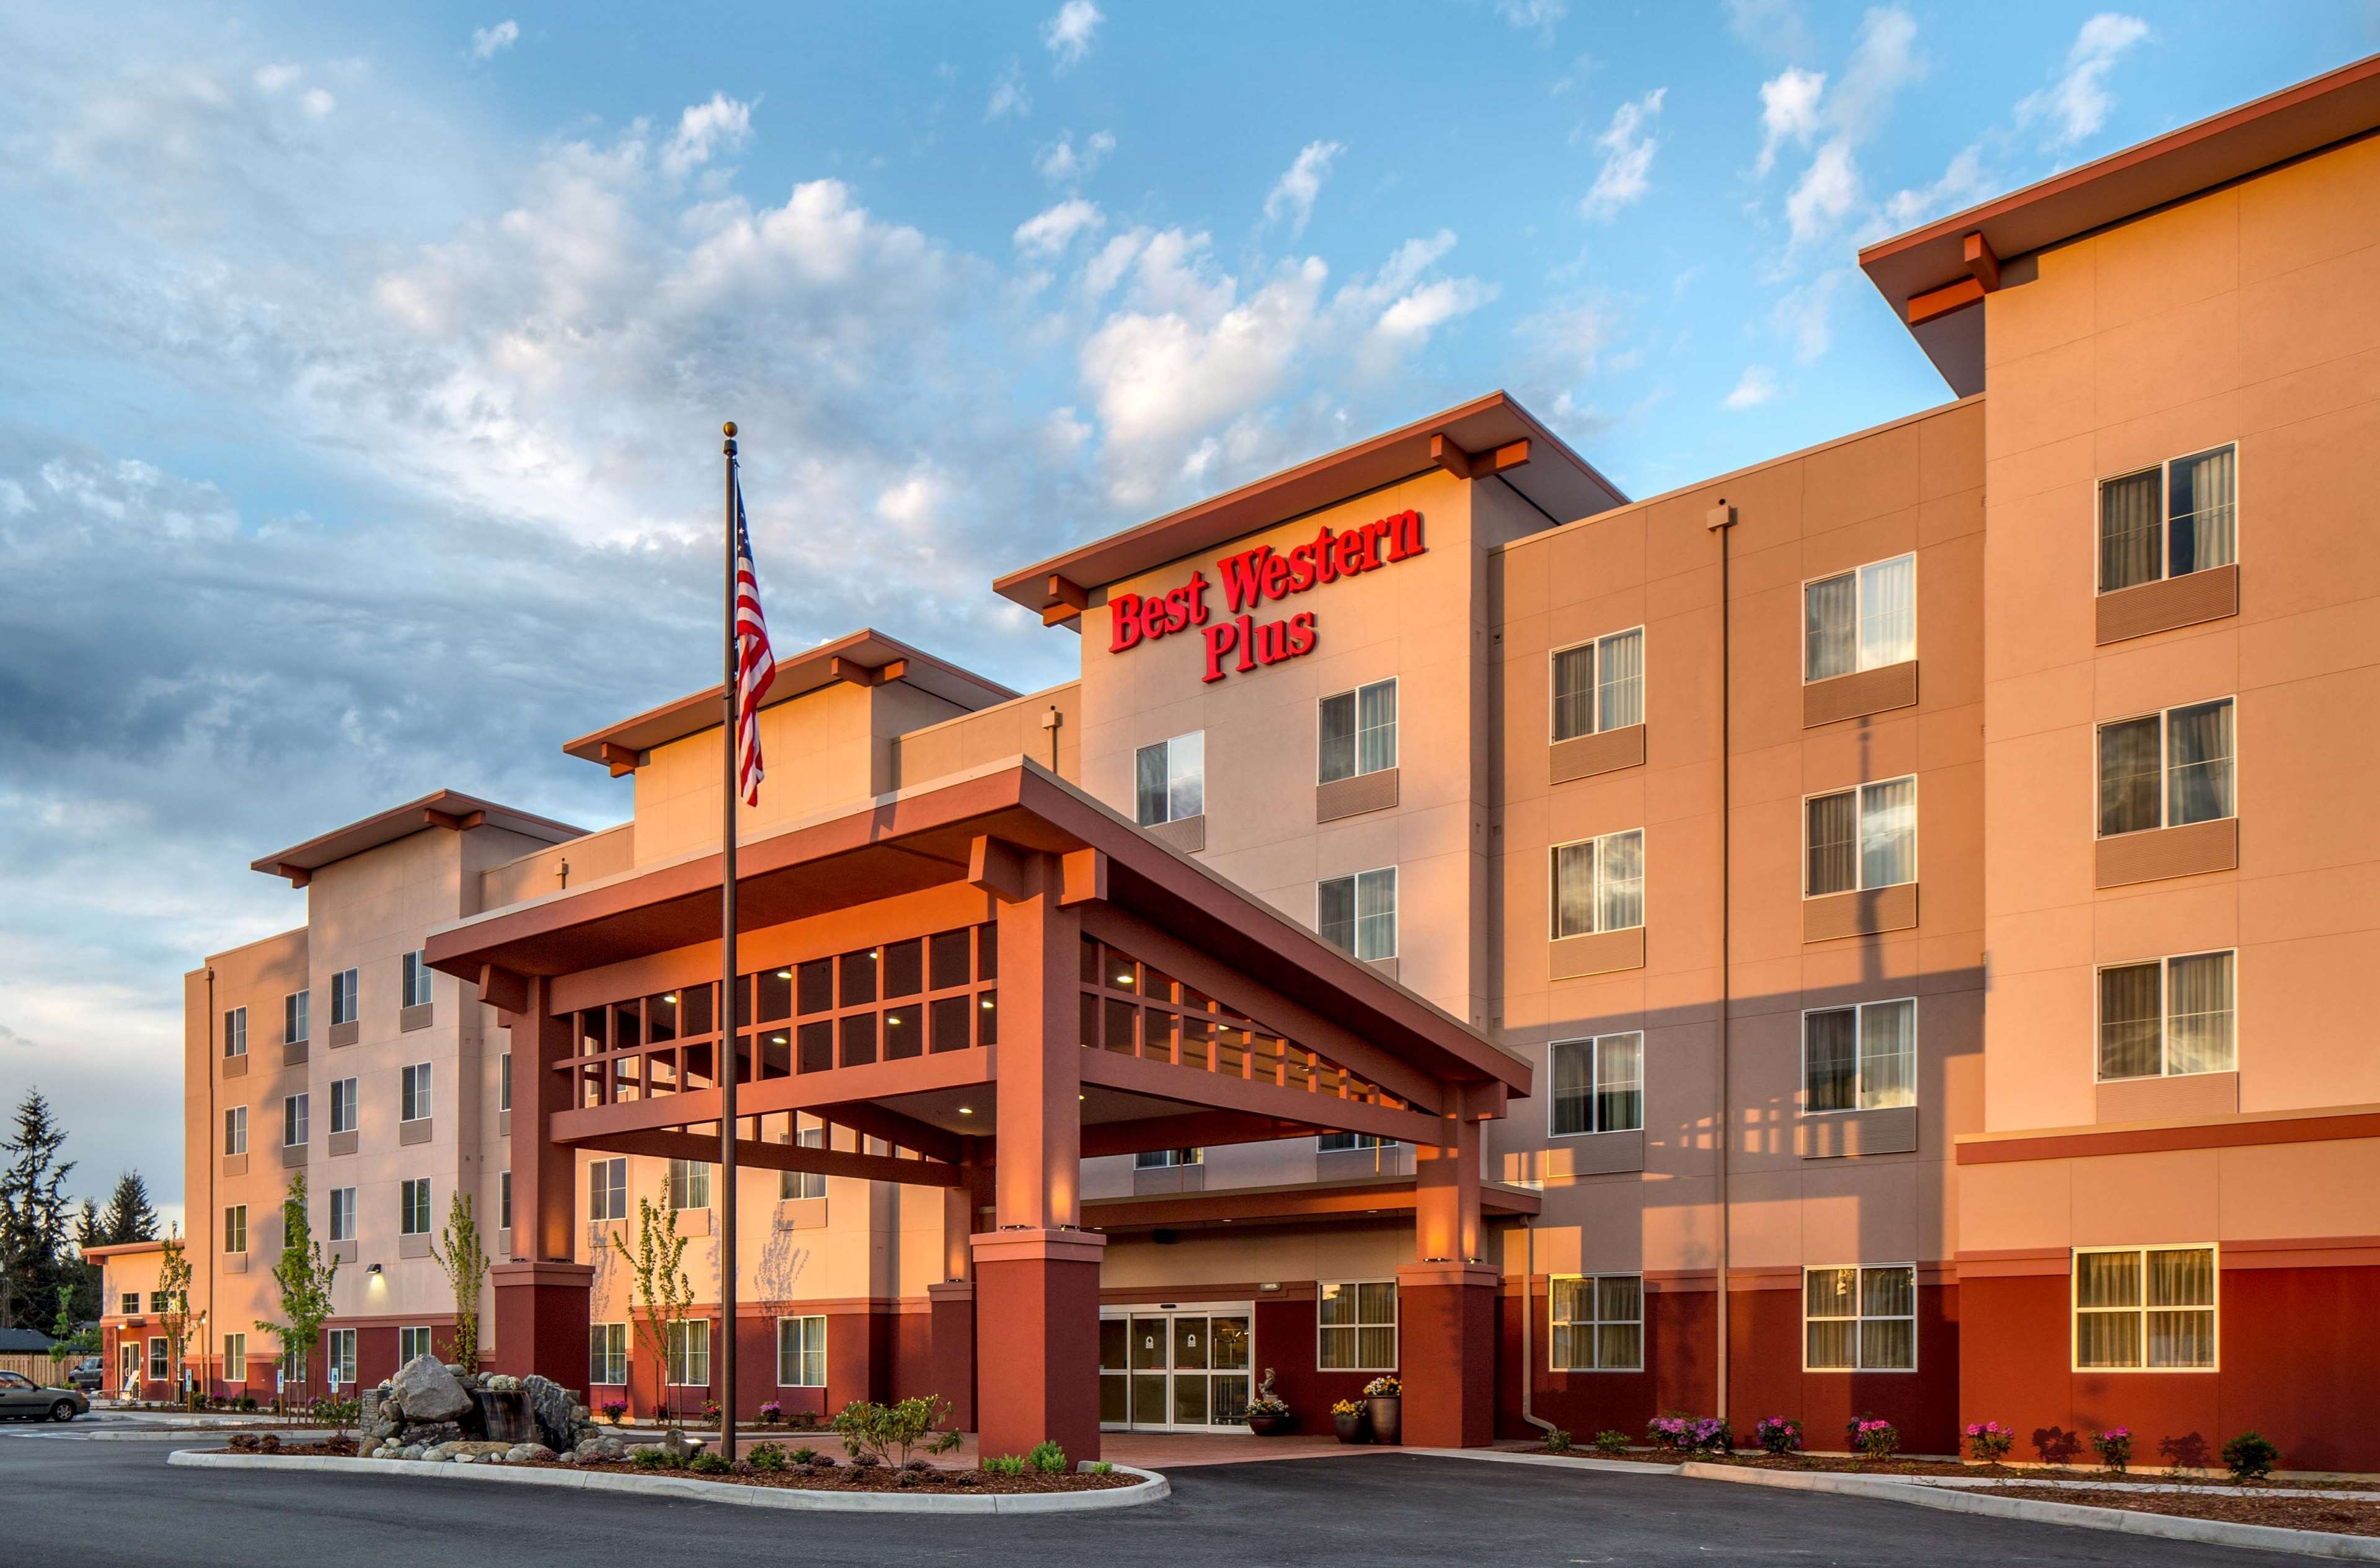 Tulalip casino rewards club phone number